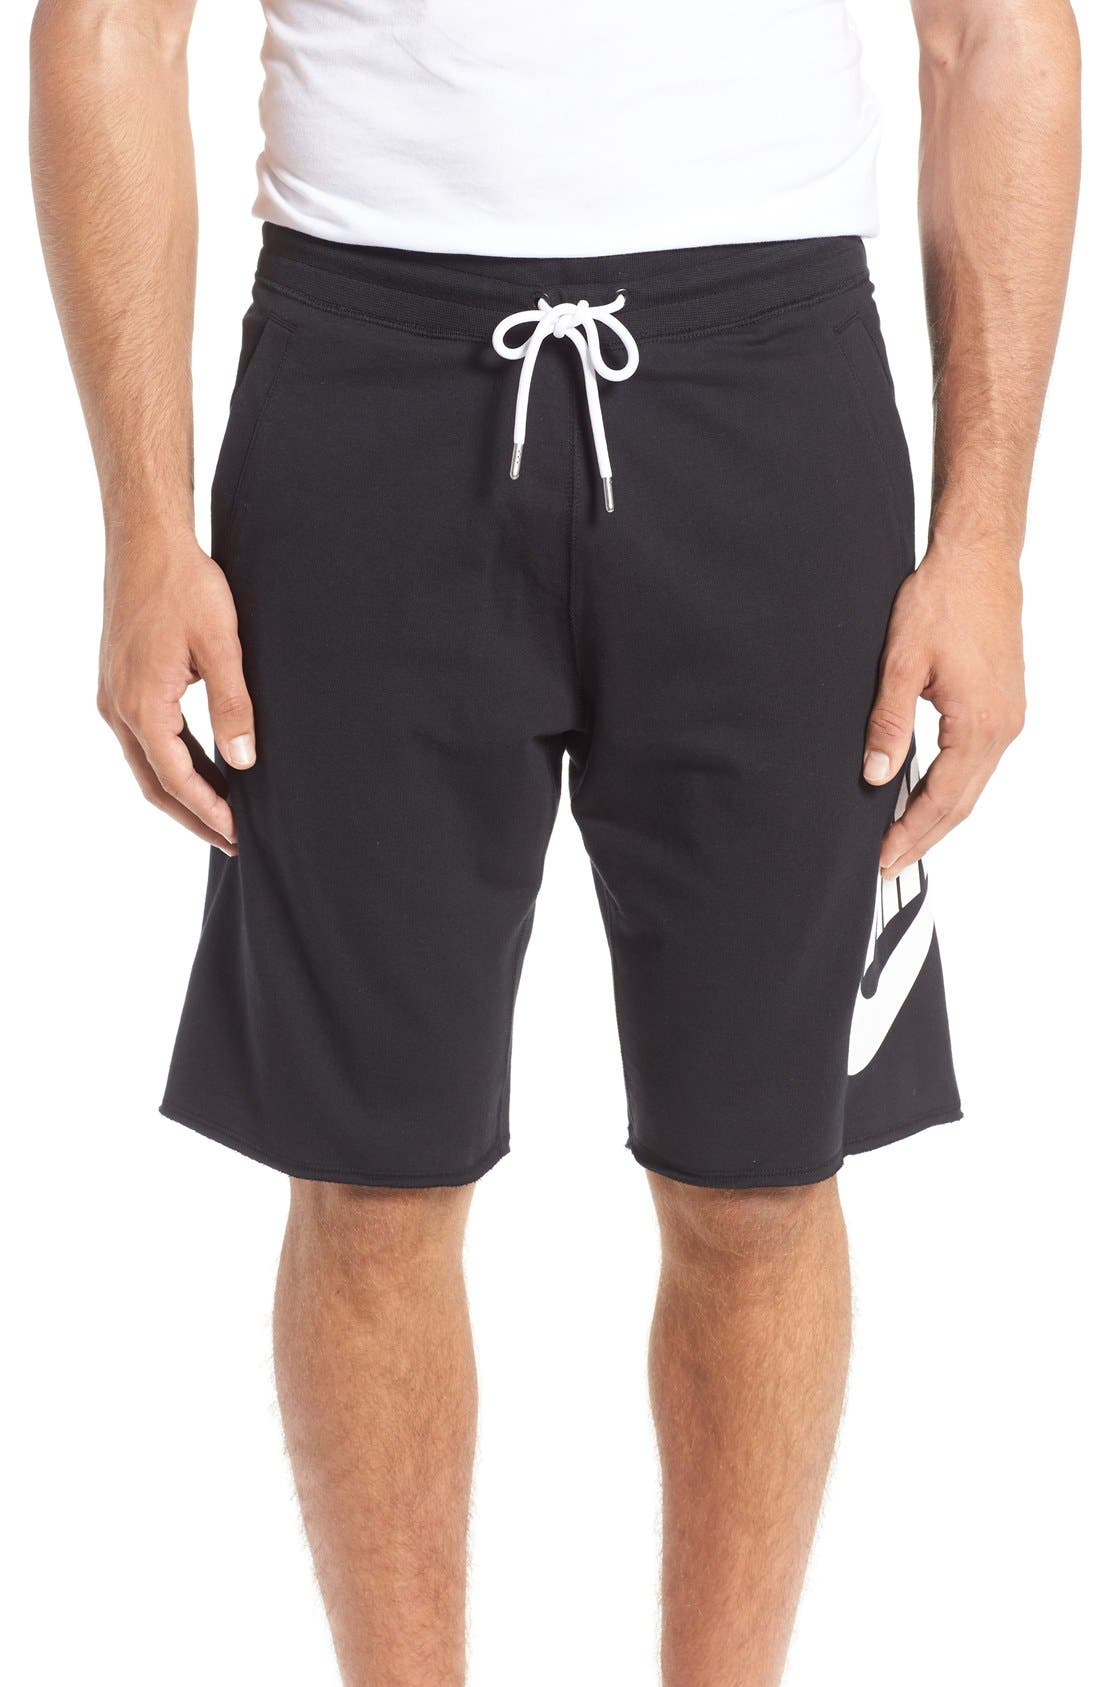 'NSW' Logo French Terry Shorts,                         Main,                         color, Black/ White